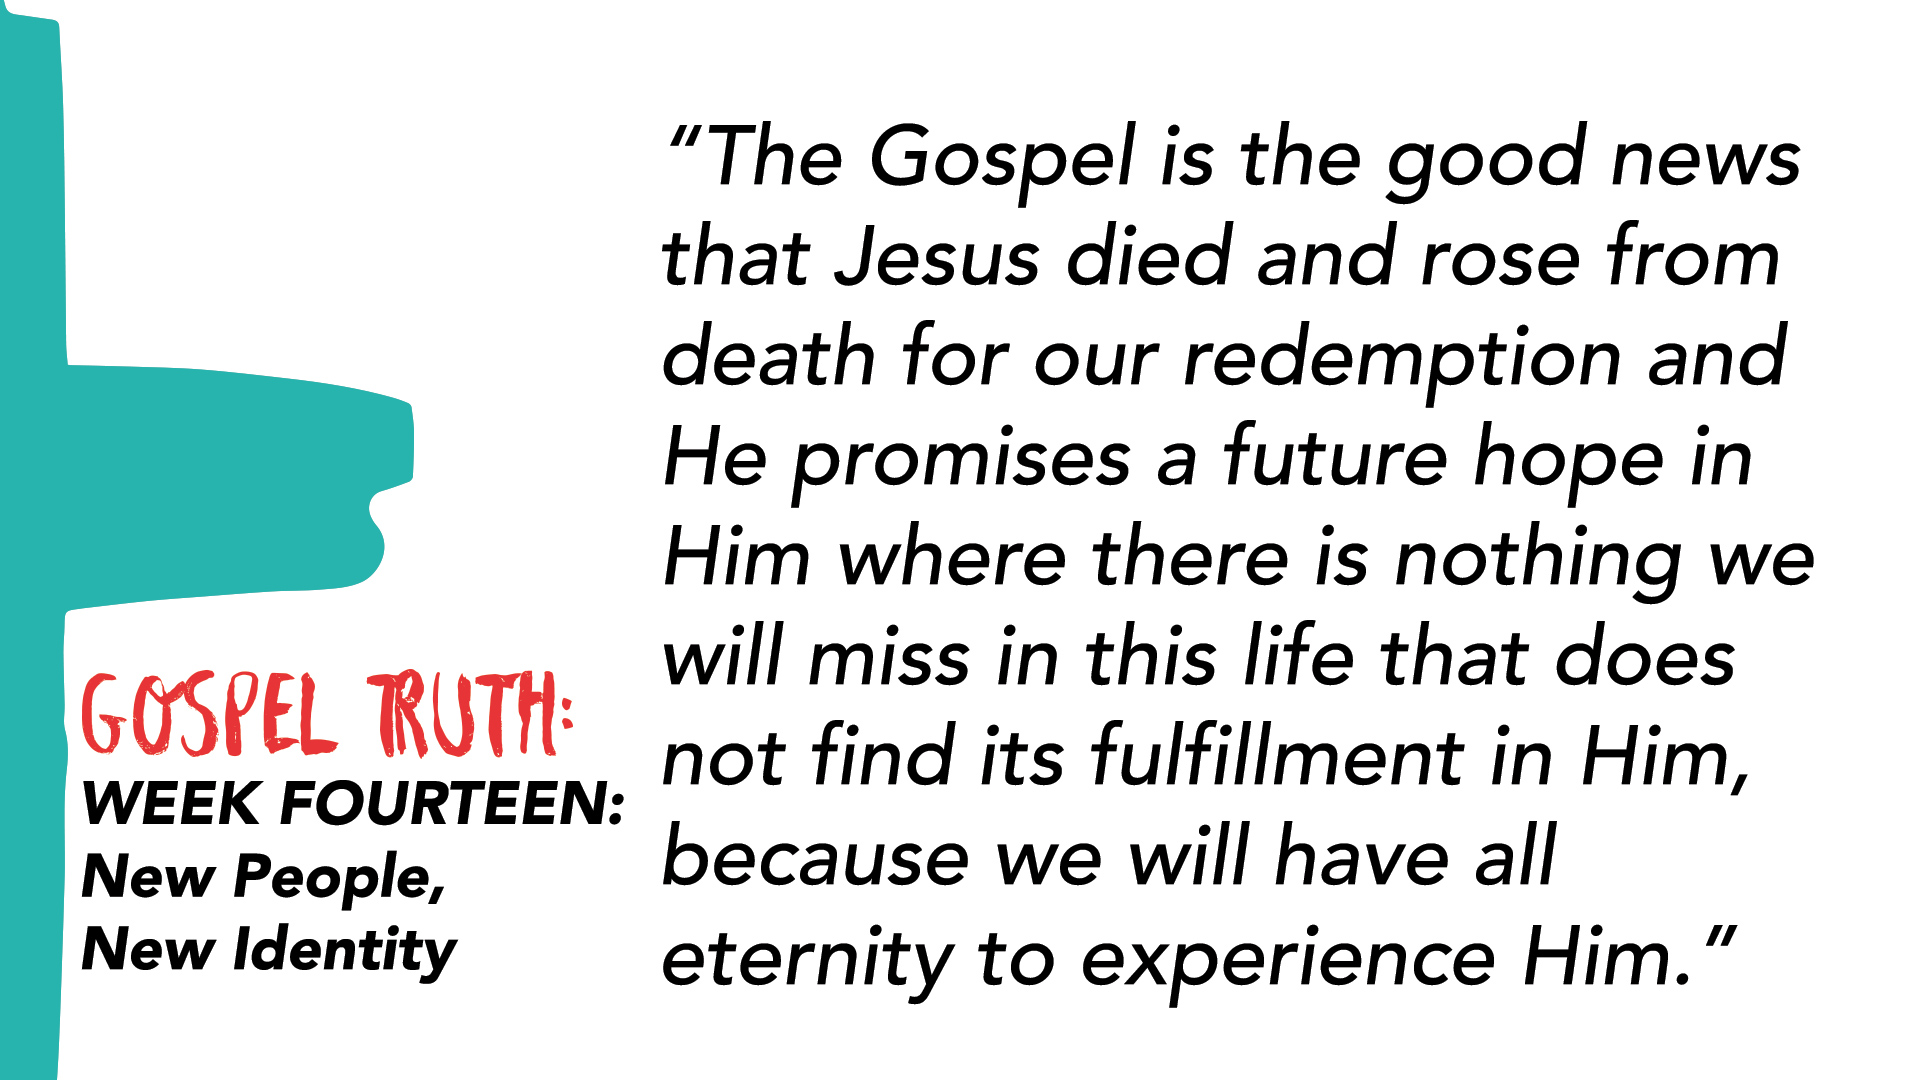 The Gospel is the good news that Jesus died and rose from death for our redemption and He promises a future hope in Him where there is nothing we will miss in this life that does not find its fulfillment in Him, because we will have all eternity to experience Him.